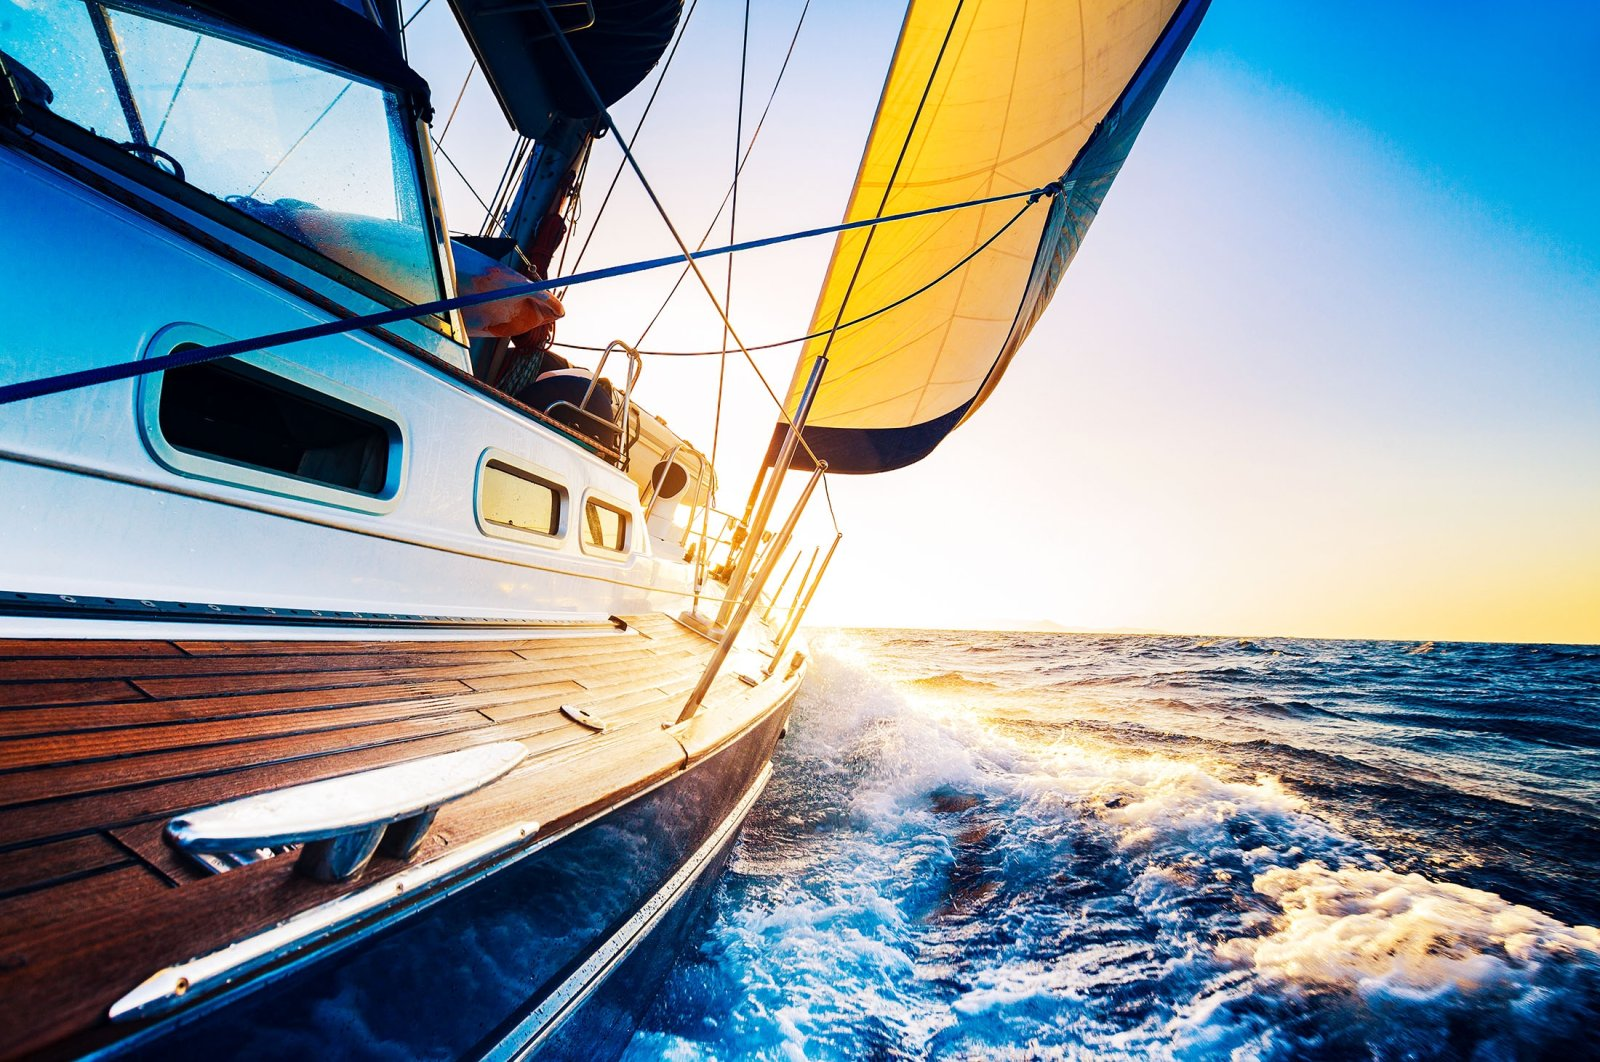 When a sail rips or is on its last legs, upcycling the fabric into something useful saves it from going to trash. (Shutterstock Photo)